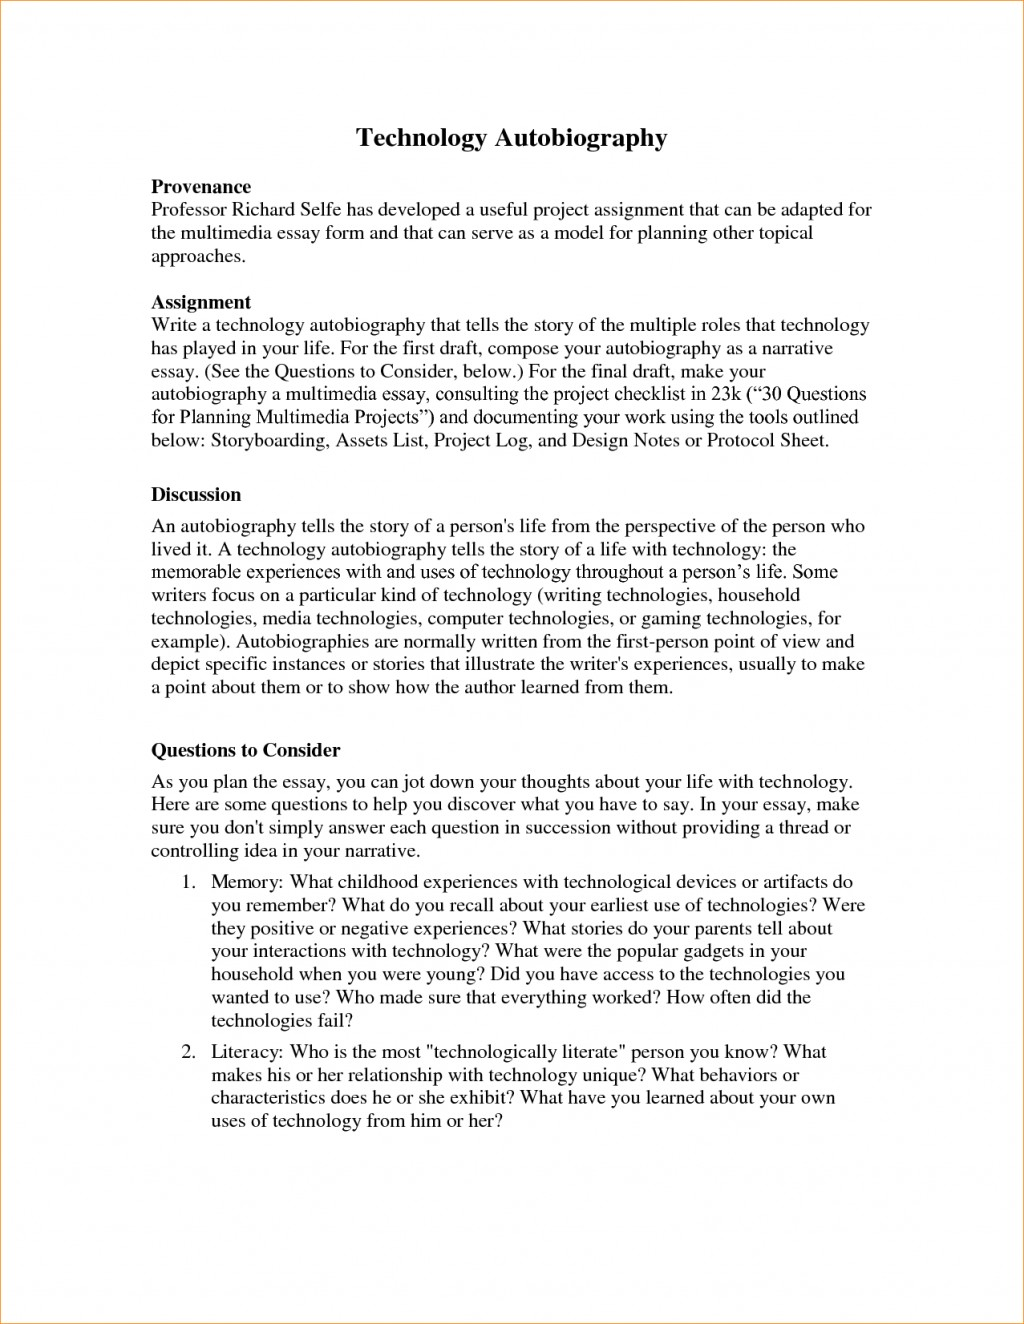 009 How Tote An Autobiographical Essay Examples Of Autobiography Essays Example For Jobting Graduate School College Admissions Scholarship Outline Incredible To Write Novel Alexander Chee Large